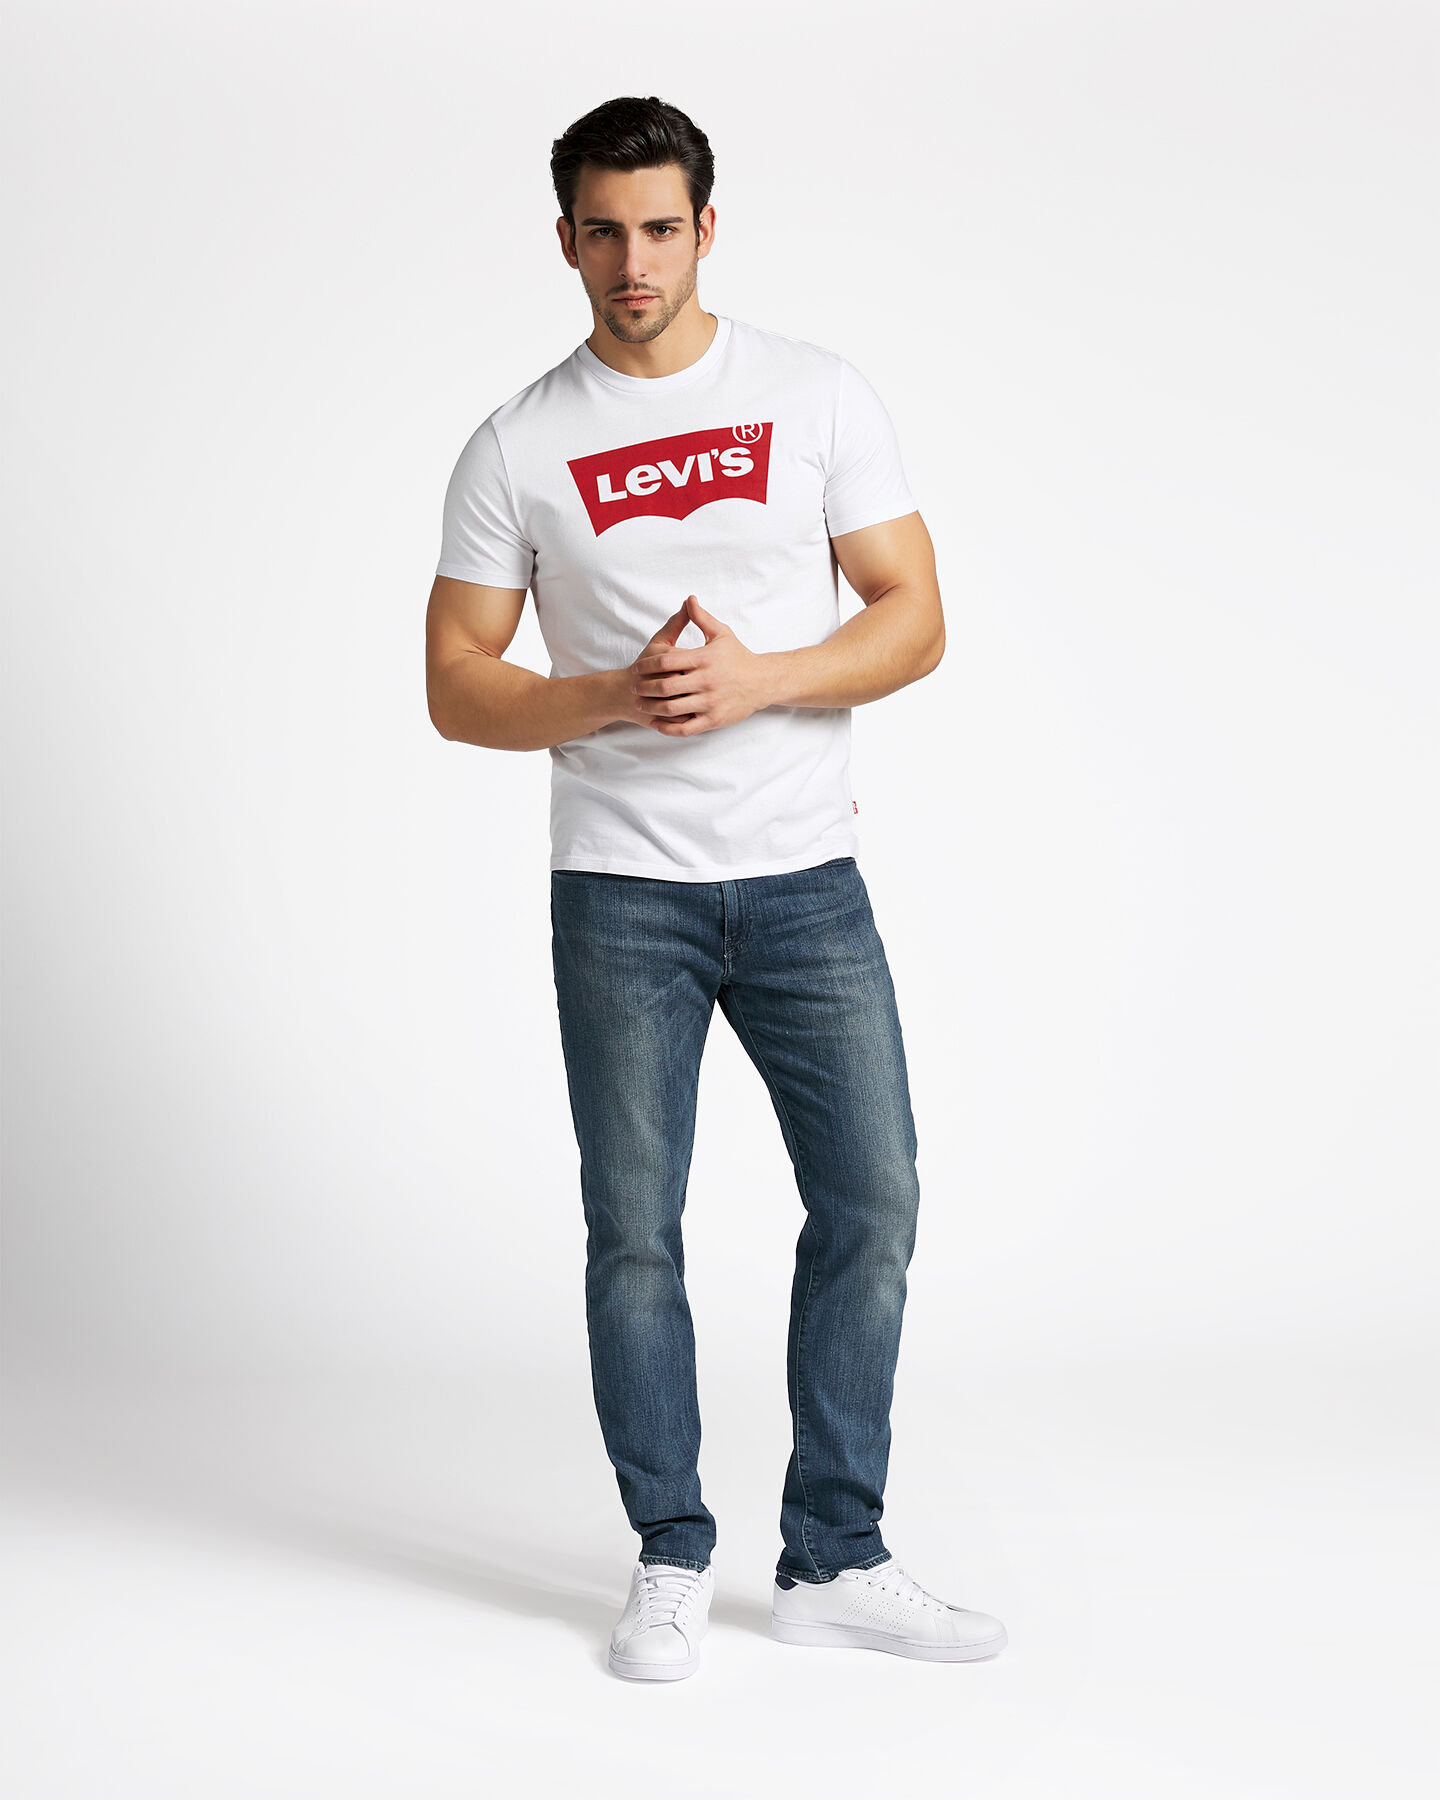 T-Shirt LEVI'S HOUSEMARK M S4064491 scatto 1